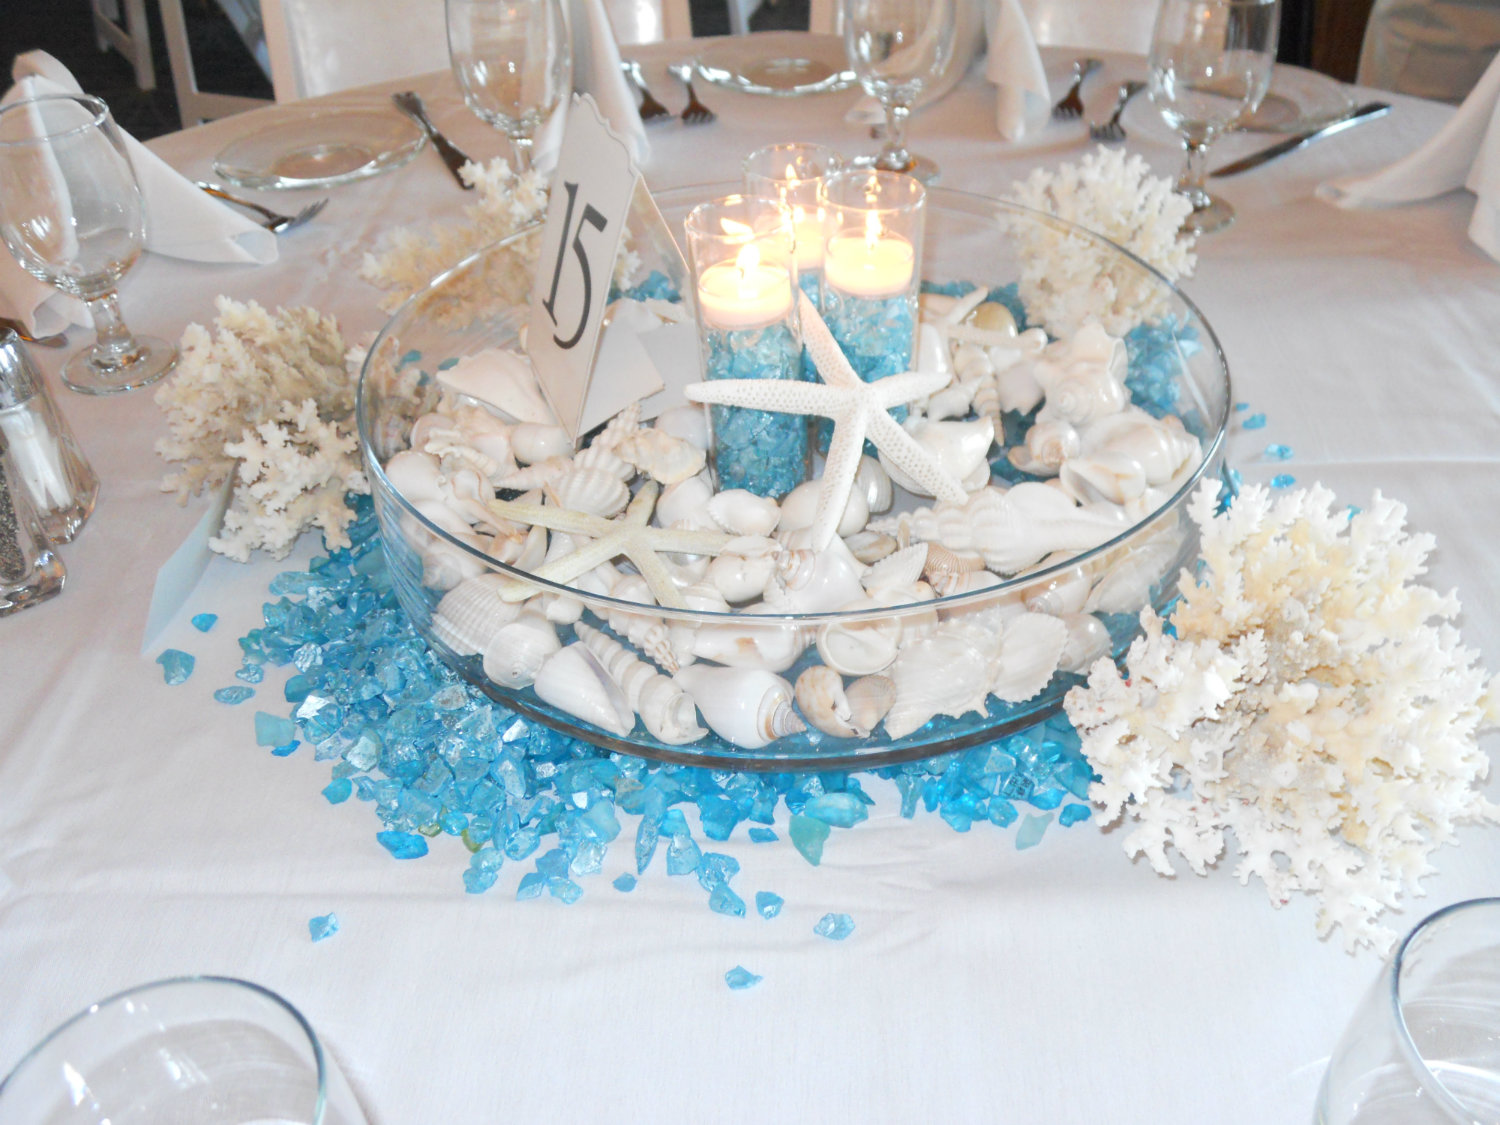 Liven your look and save money with do it yourself wedding liven your look and save money with do it yourself wedding centerpieces solutioingenieria Images